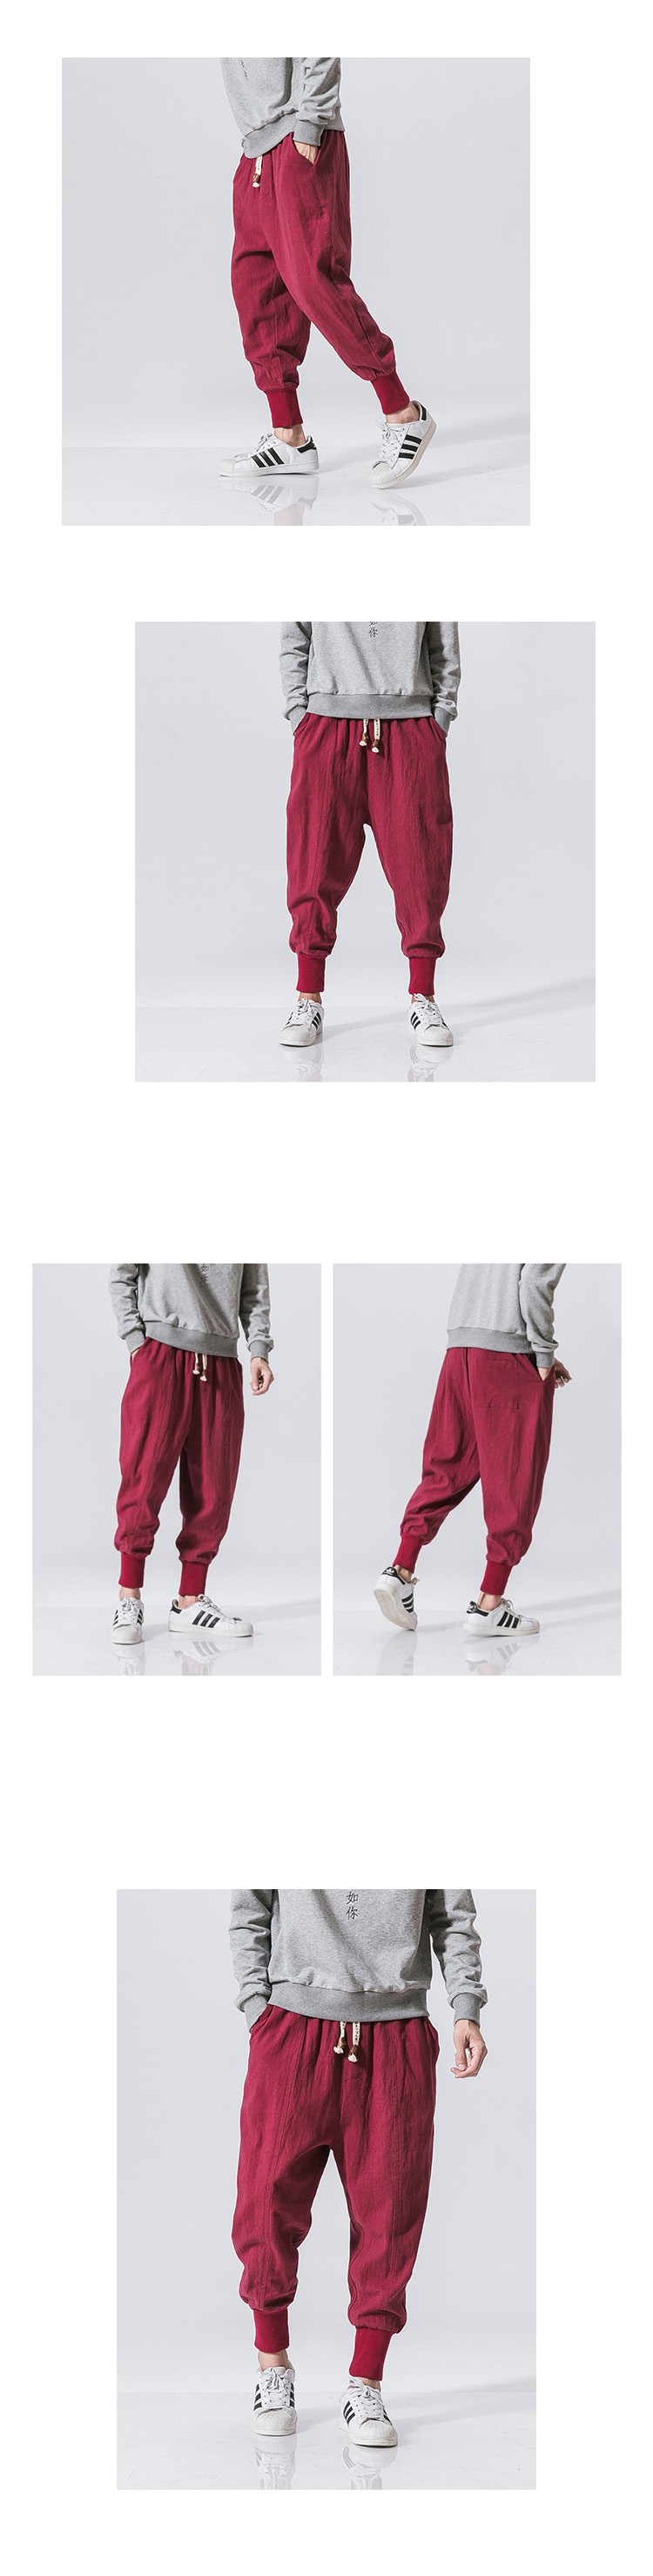 Sincism Store Men Harem Pants Japanese Casual Cotton Linen Trouser Man Jogger Pants Chinese Baggy Pants